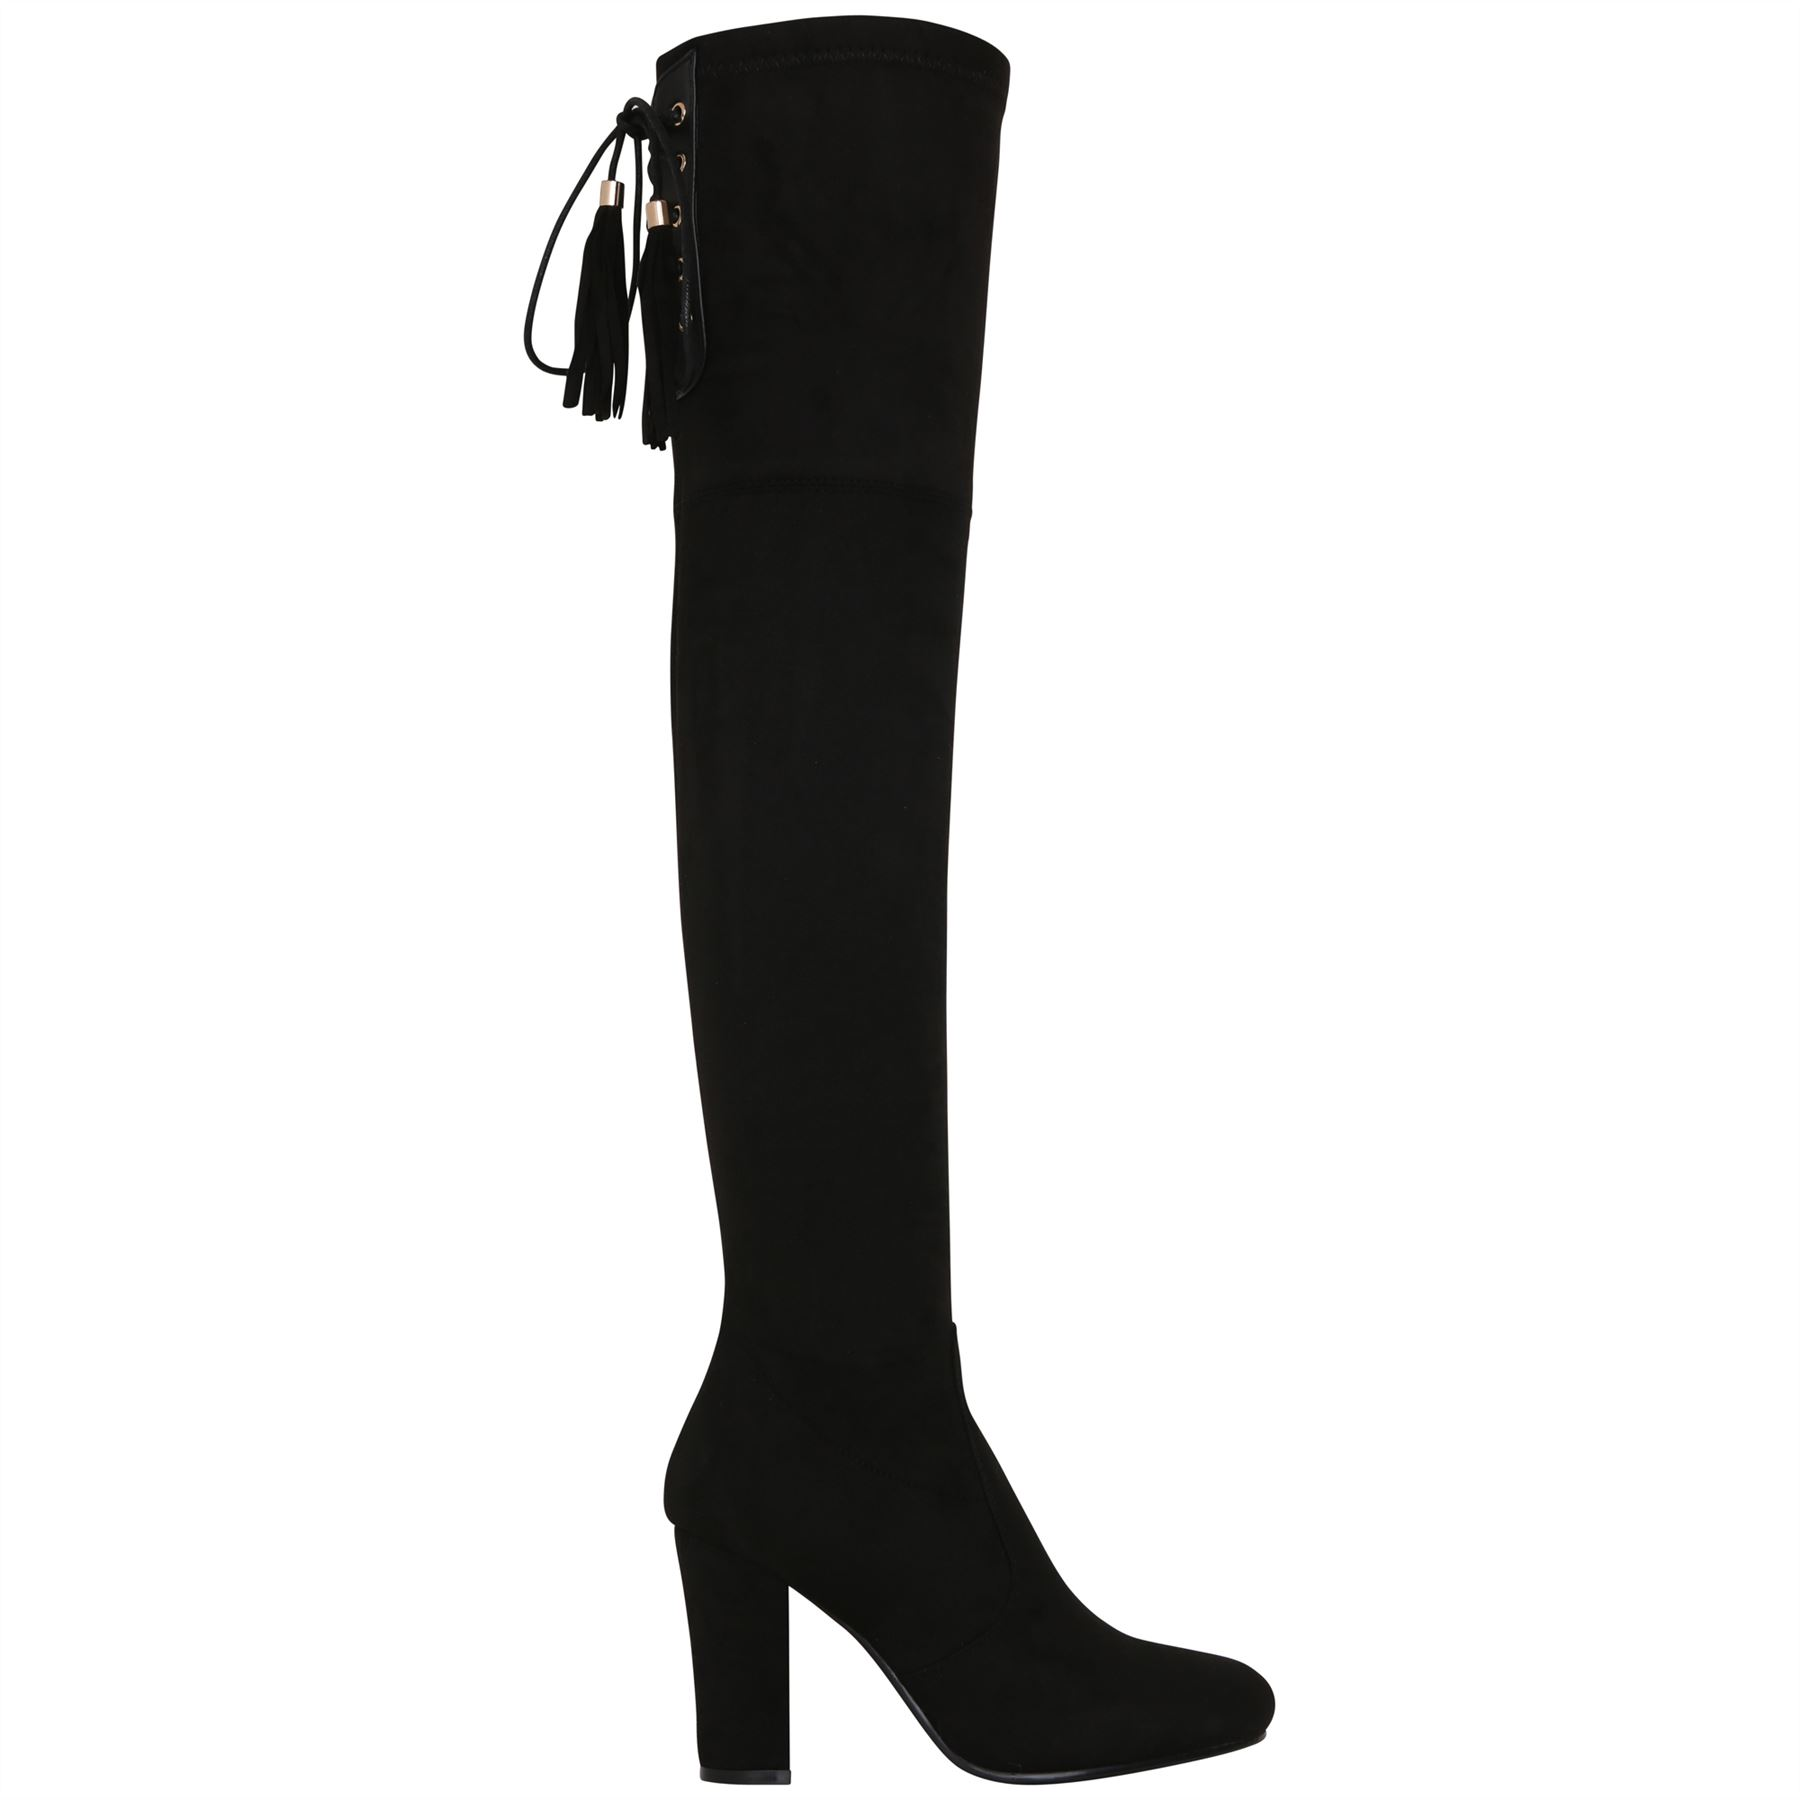 Womens-Over-Knee-High-Boots-Ladies-Low-Block-Heel-Riding-Stretch-Winter-Shoes miniatura 4